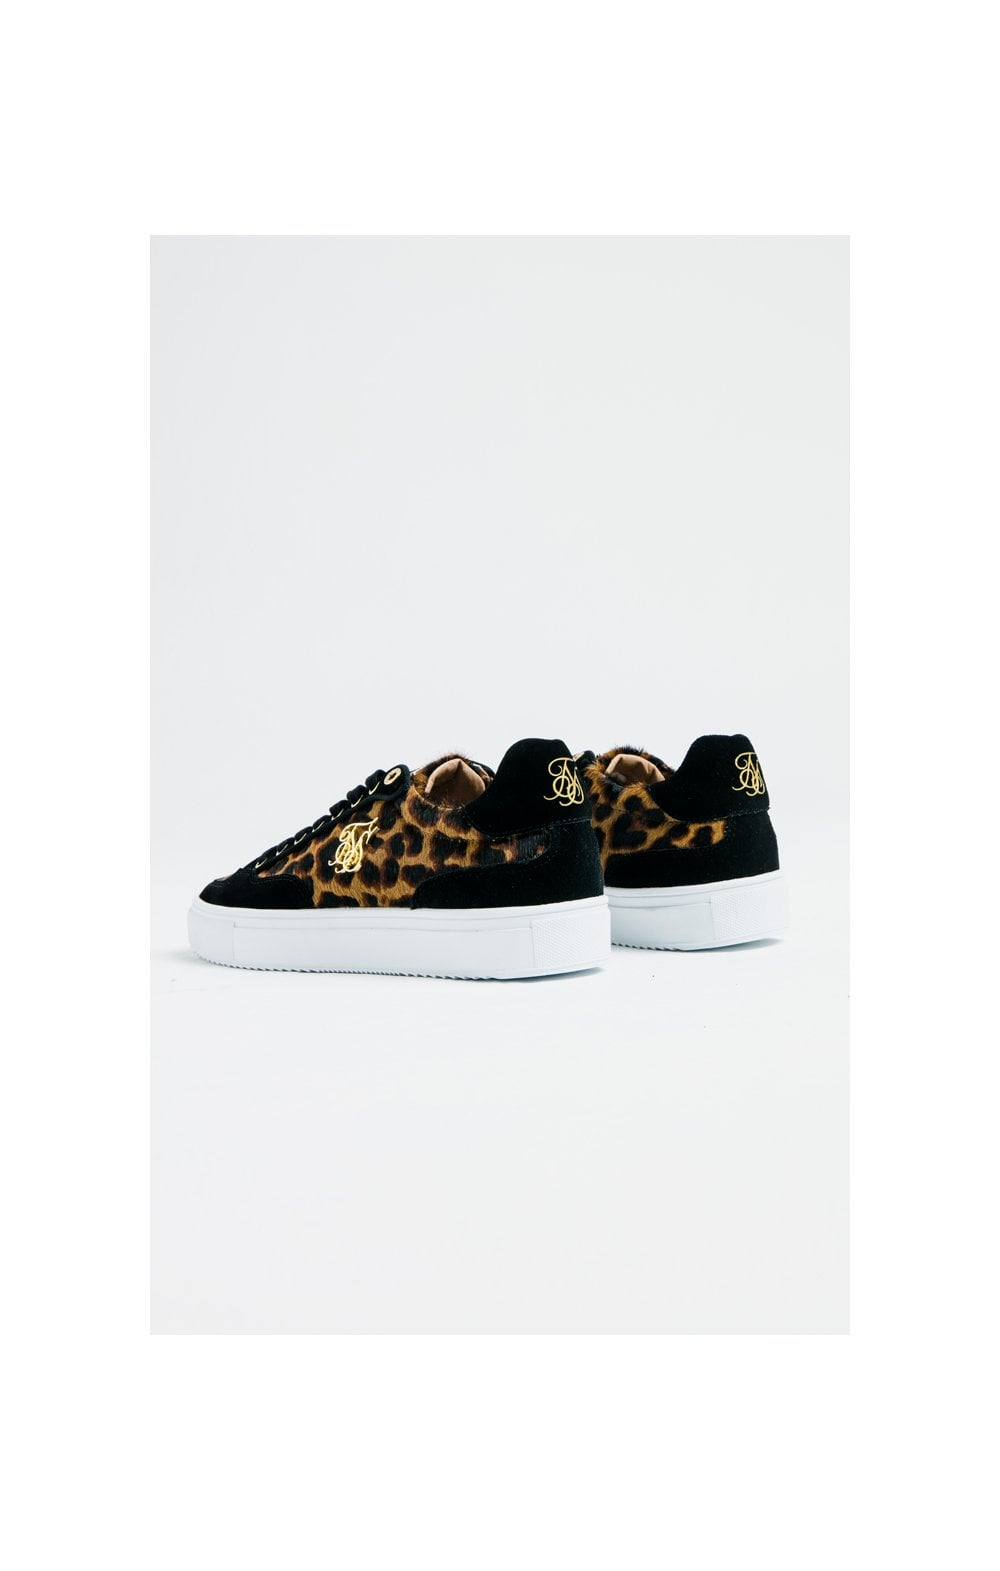 SikSilk x Dani Alves Phantom Leopard - Black Leopard (1)